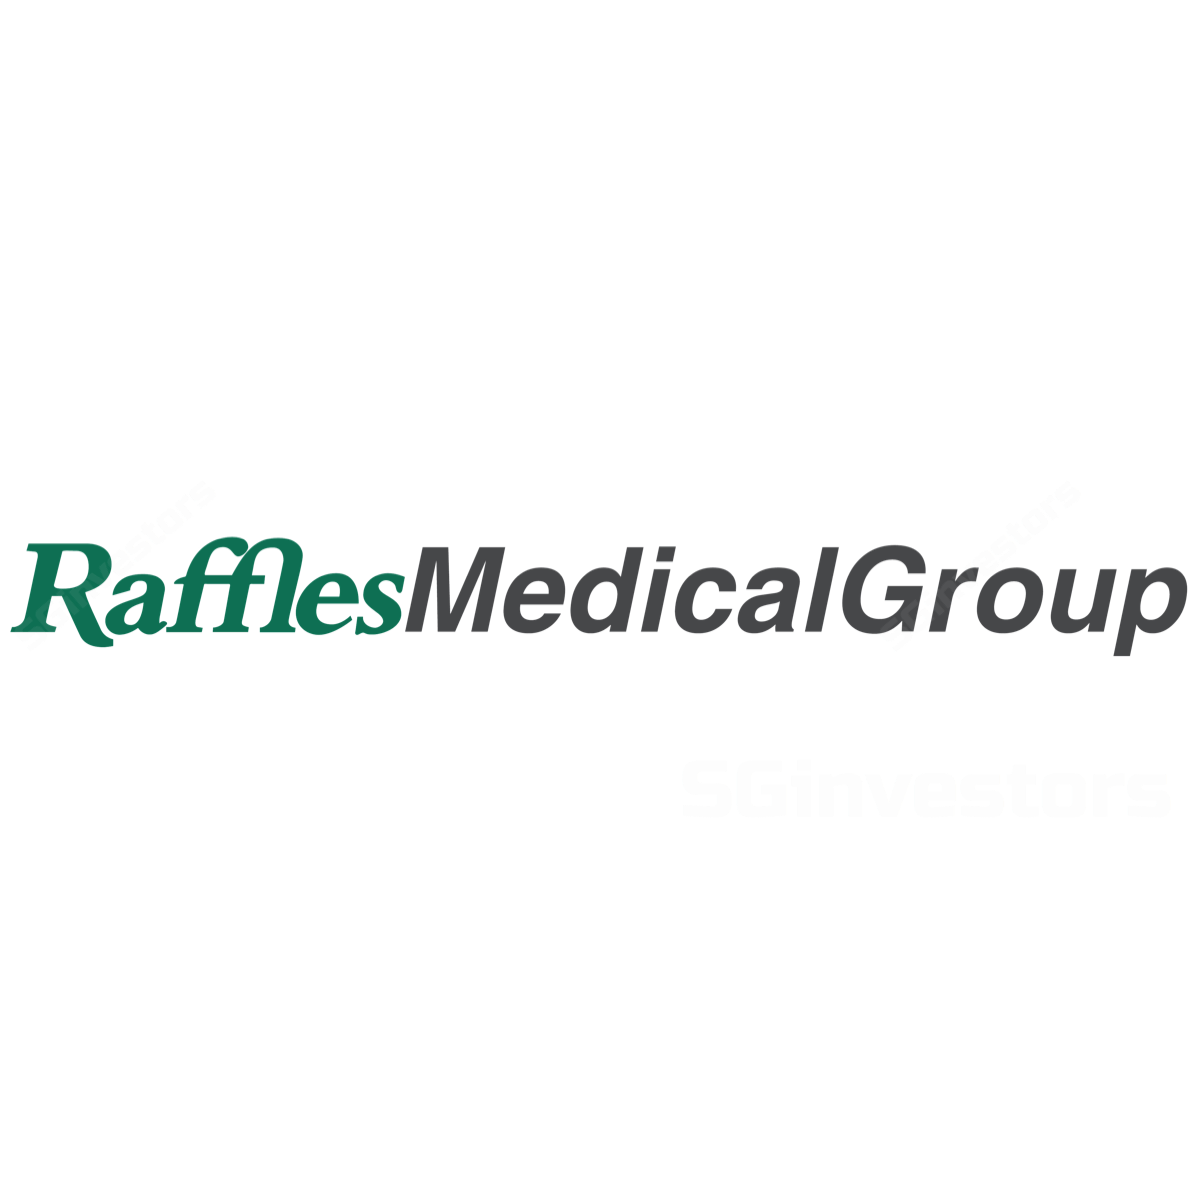 Raffles Medical Group - RHB Invest 2018-02-27: Lacklustre Outlook Due To Prevailing Headwinds